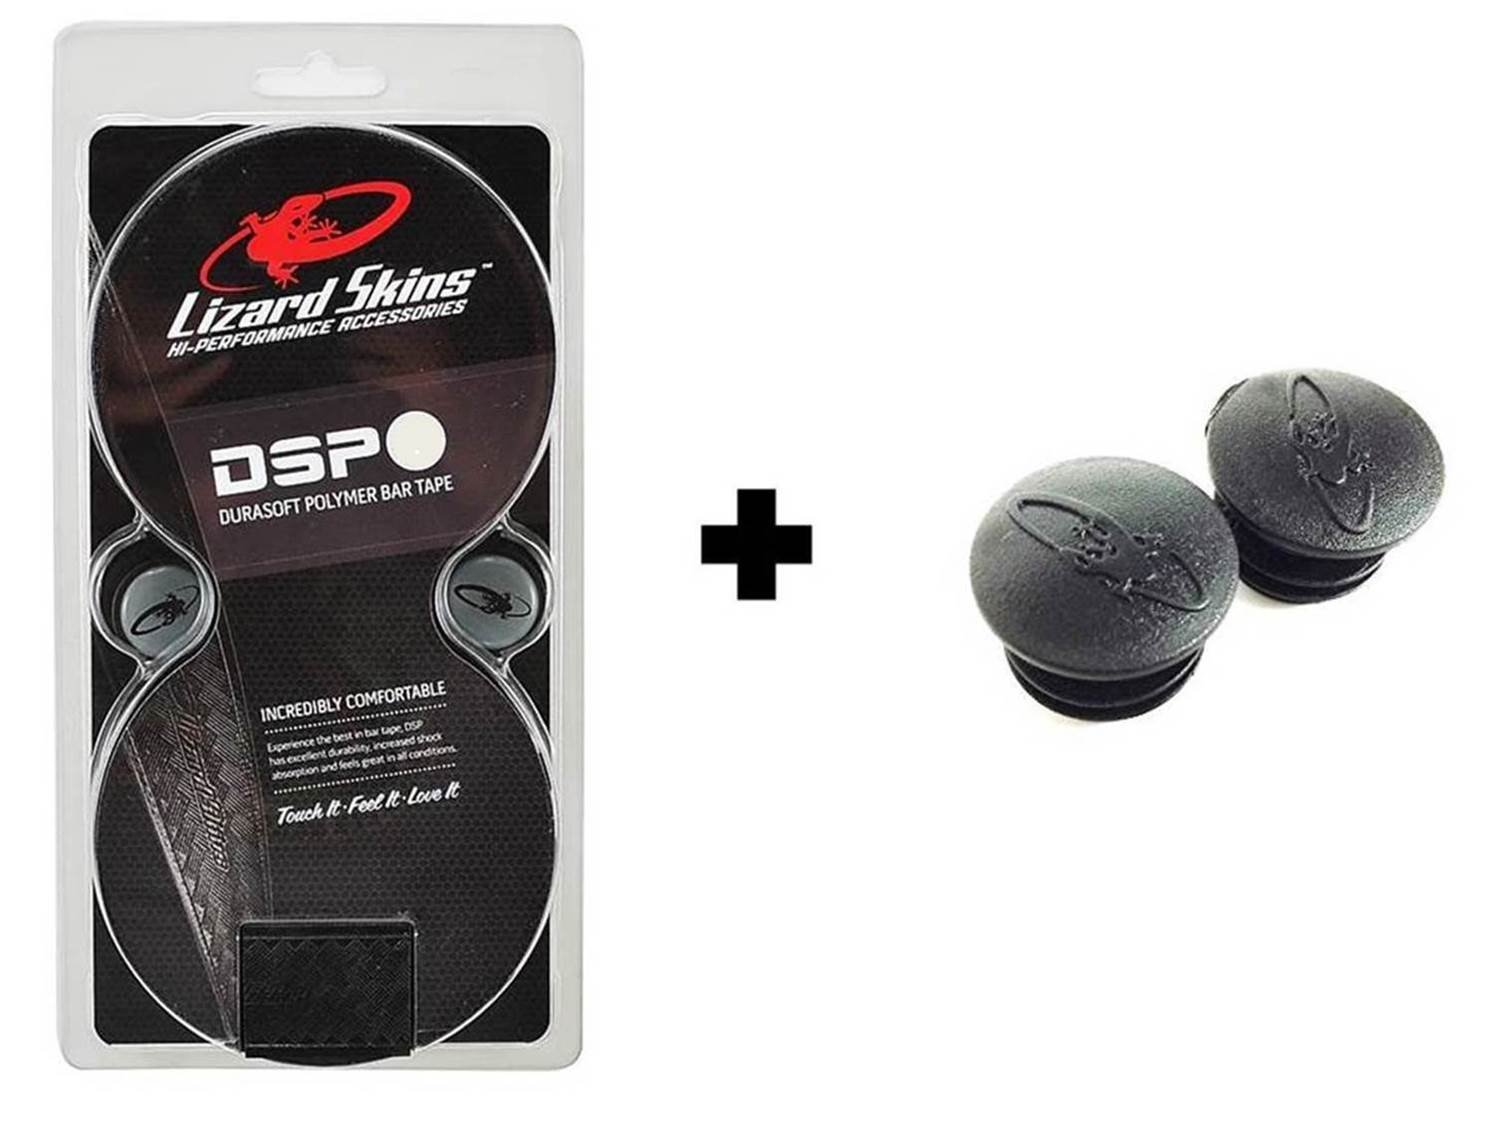 Lizard Skins Road DSP 2.5mm black  bar tape bundle | 2 rolls of tape and 2 spare bar plugs by Lizard Skins